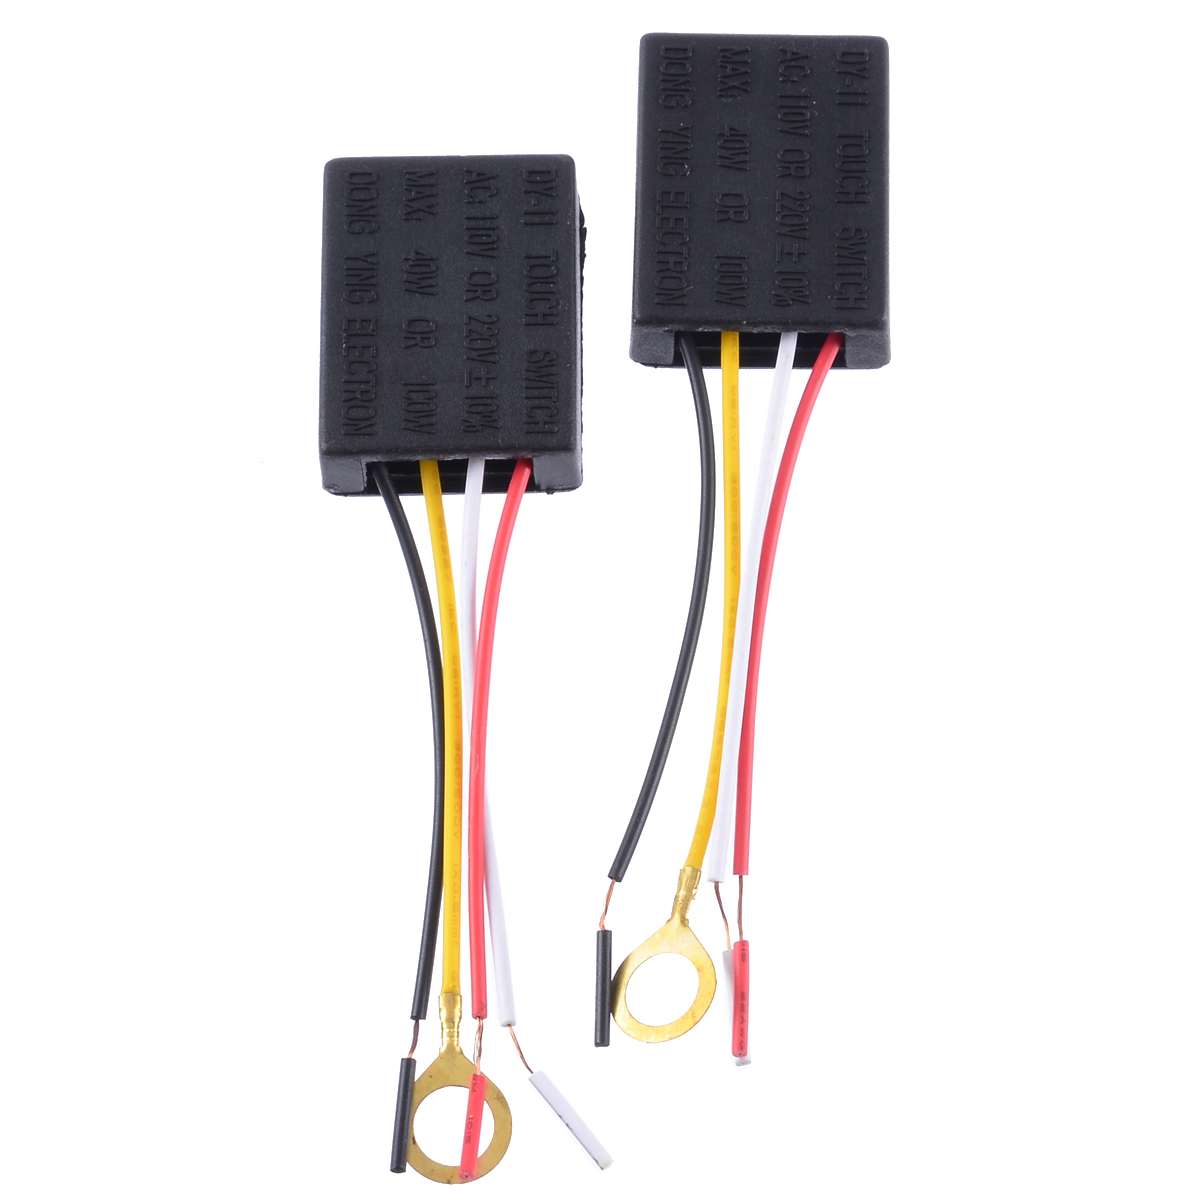 hight resolution of 2pcs 3 way touch sensor switch control bulb control dimmer switch part for desk lamp ac 100 240v